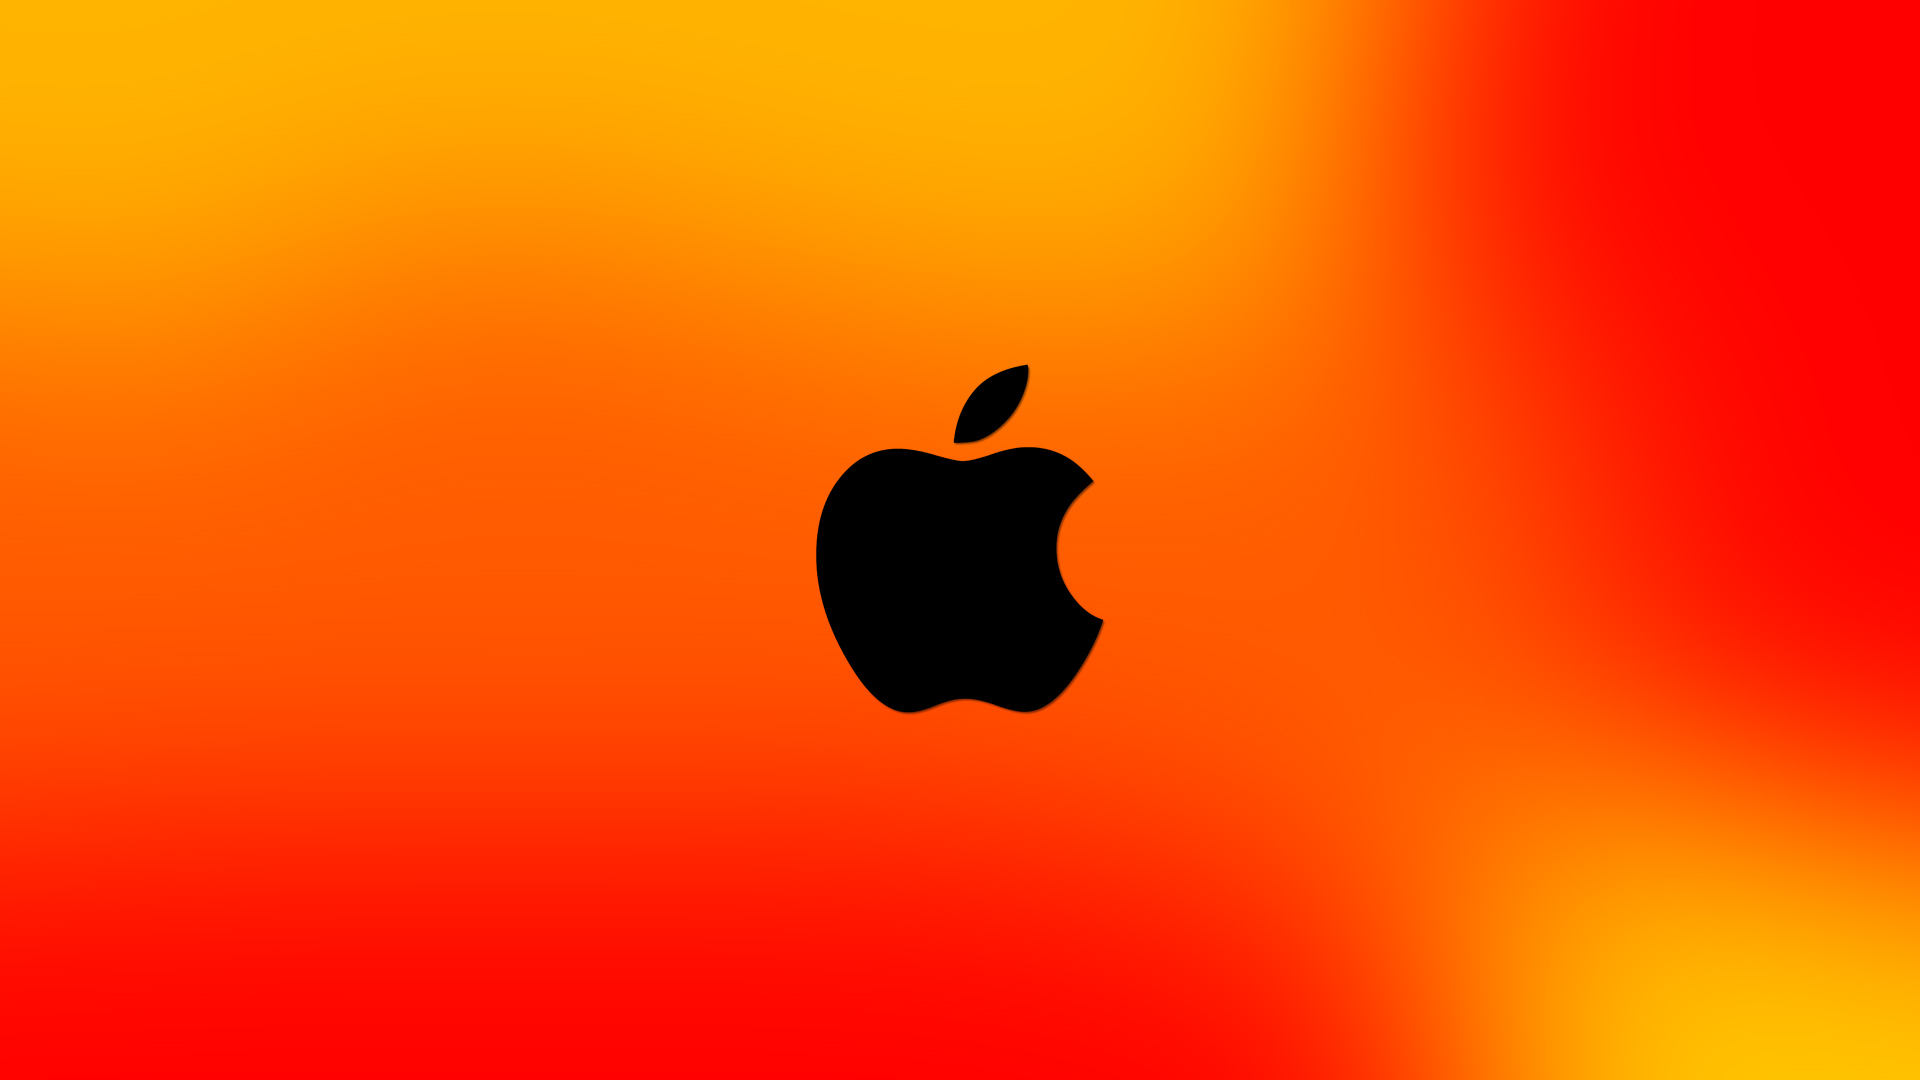 apple full hd wallpaper and background image | 1920x1080 | id:48915